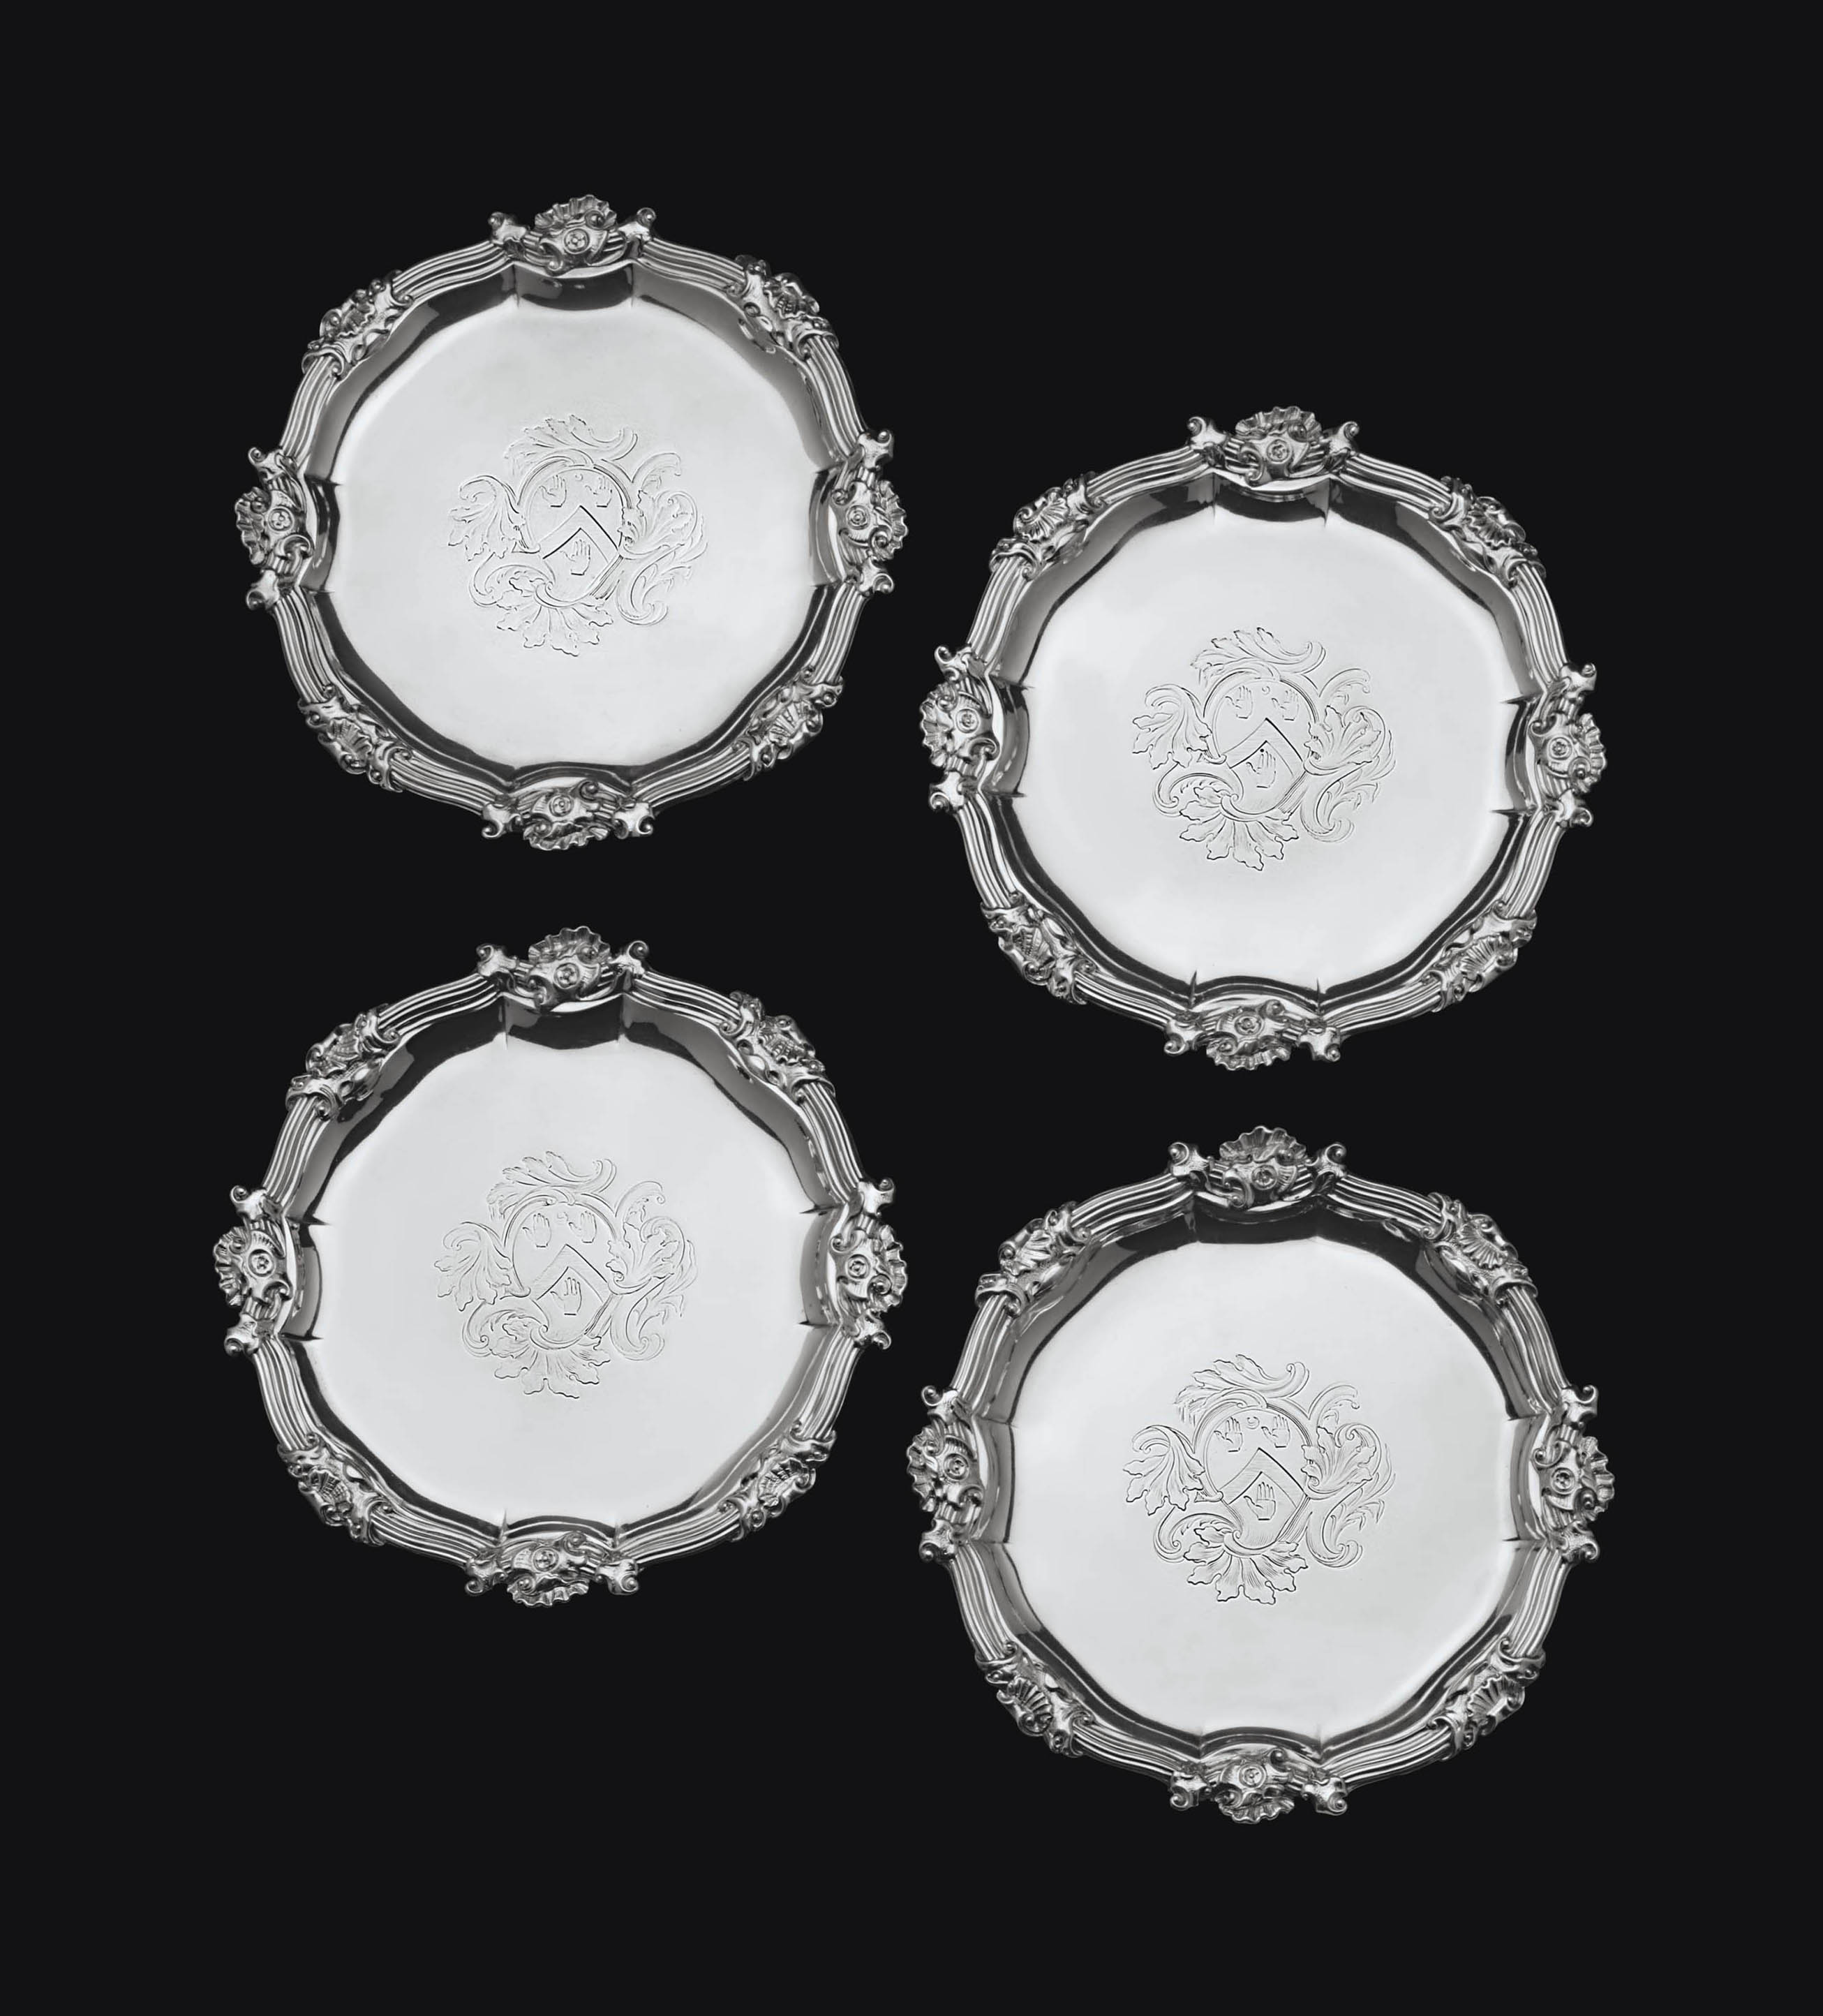 A SET OF FOUR GEORGE II SILVER WAITERS FROM THE MAYNARD SERVICE